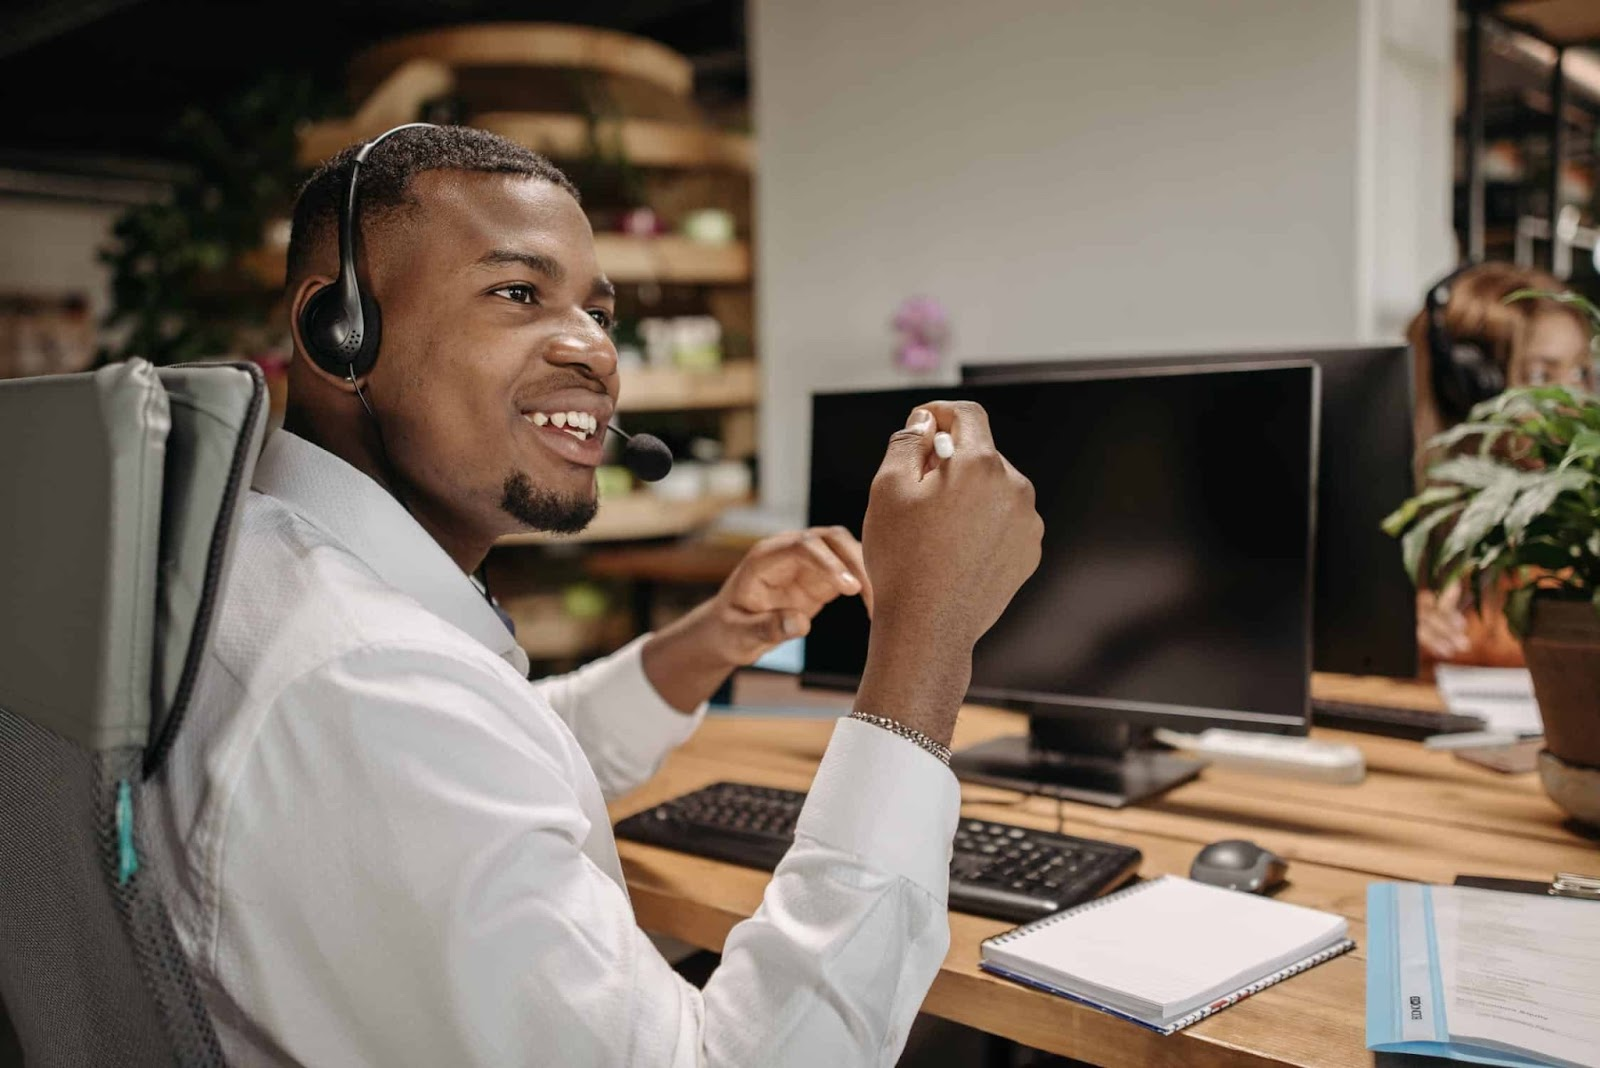 Virtual Receptionist In A Home Office